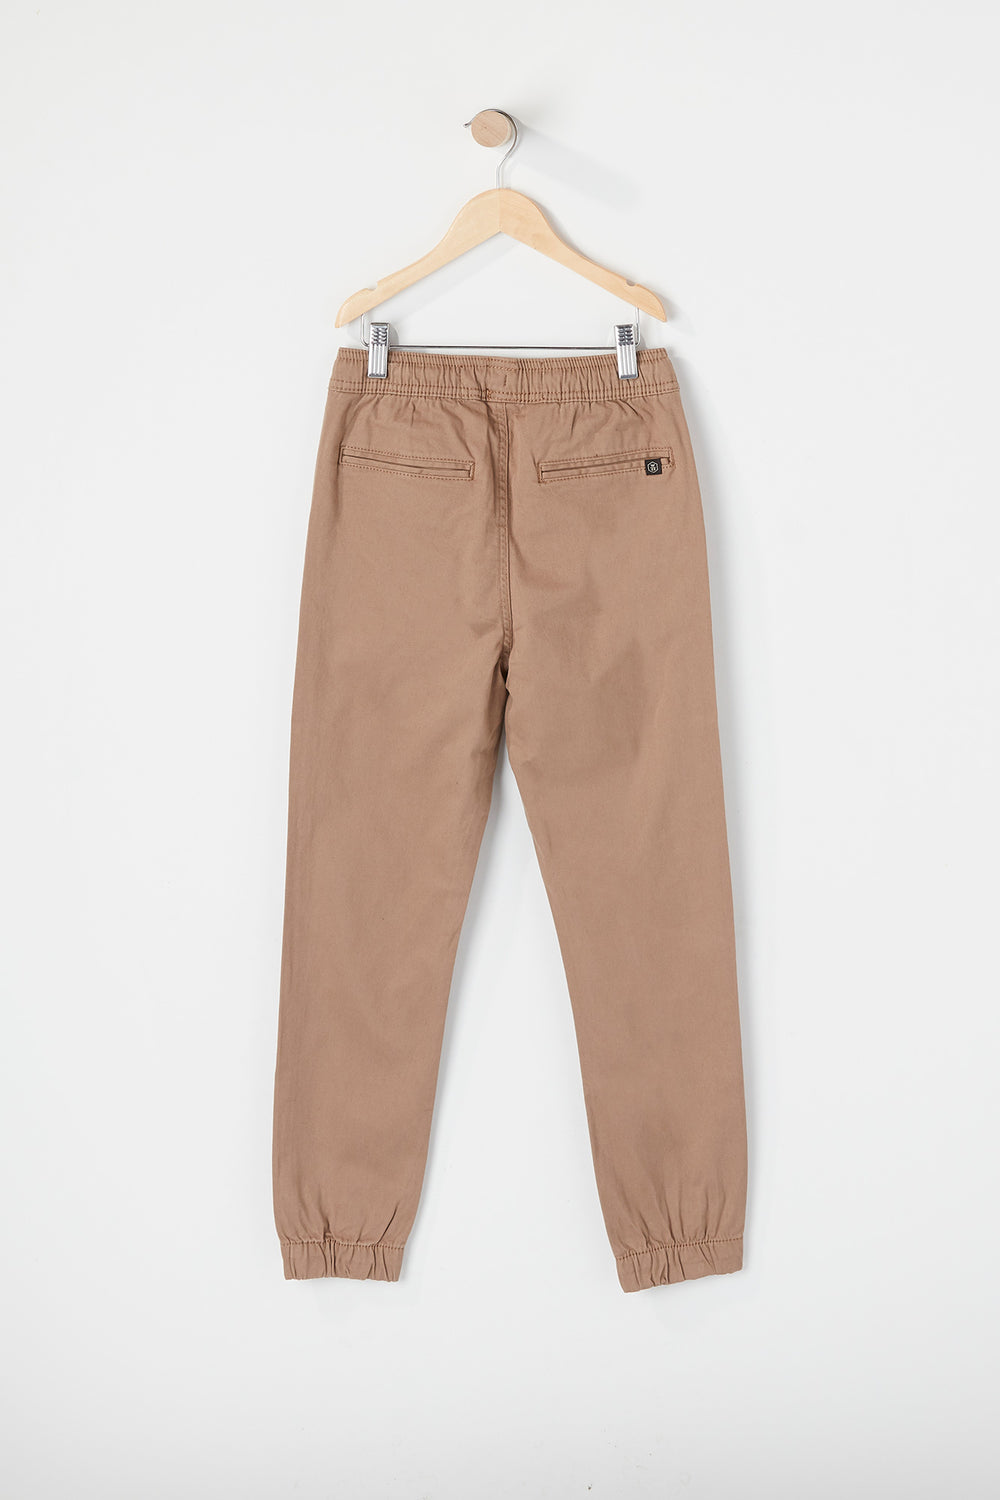 Jogger Uni Zoo York Junior Sable